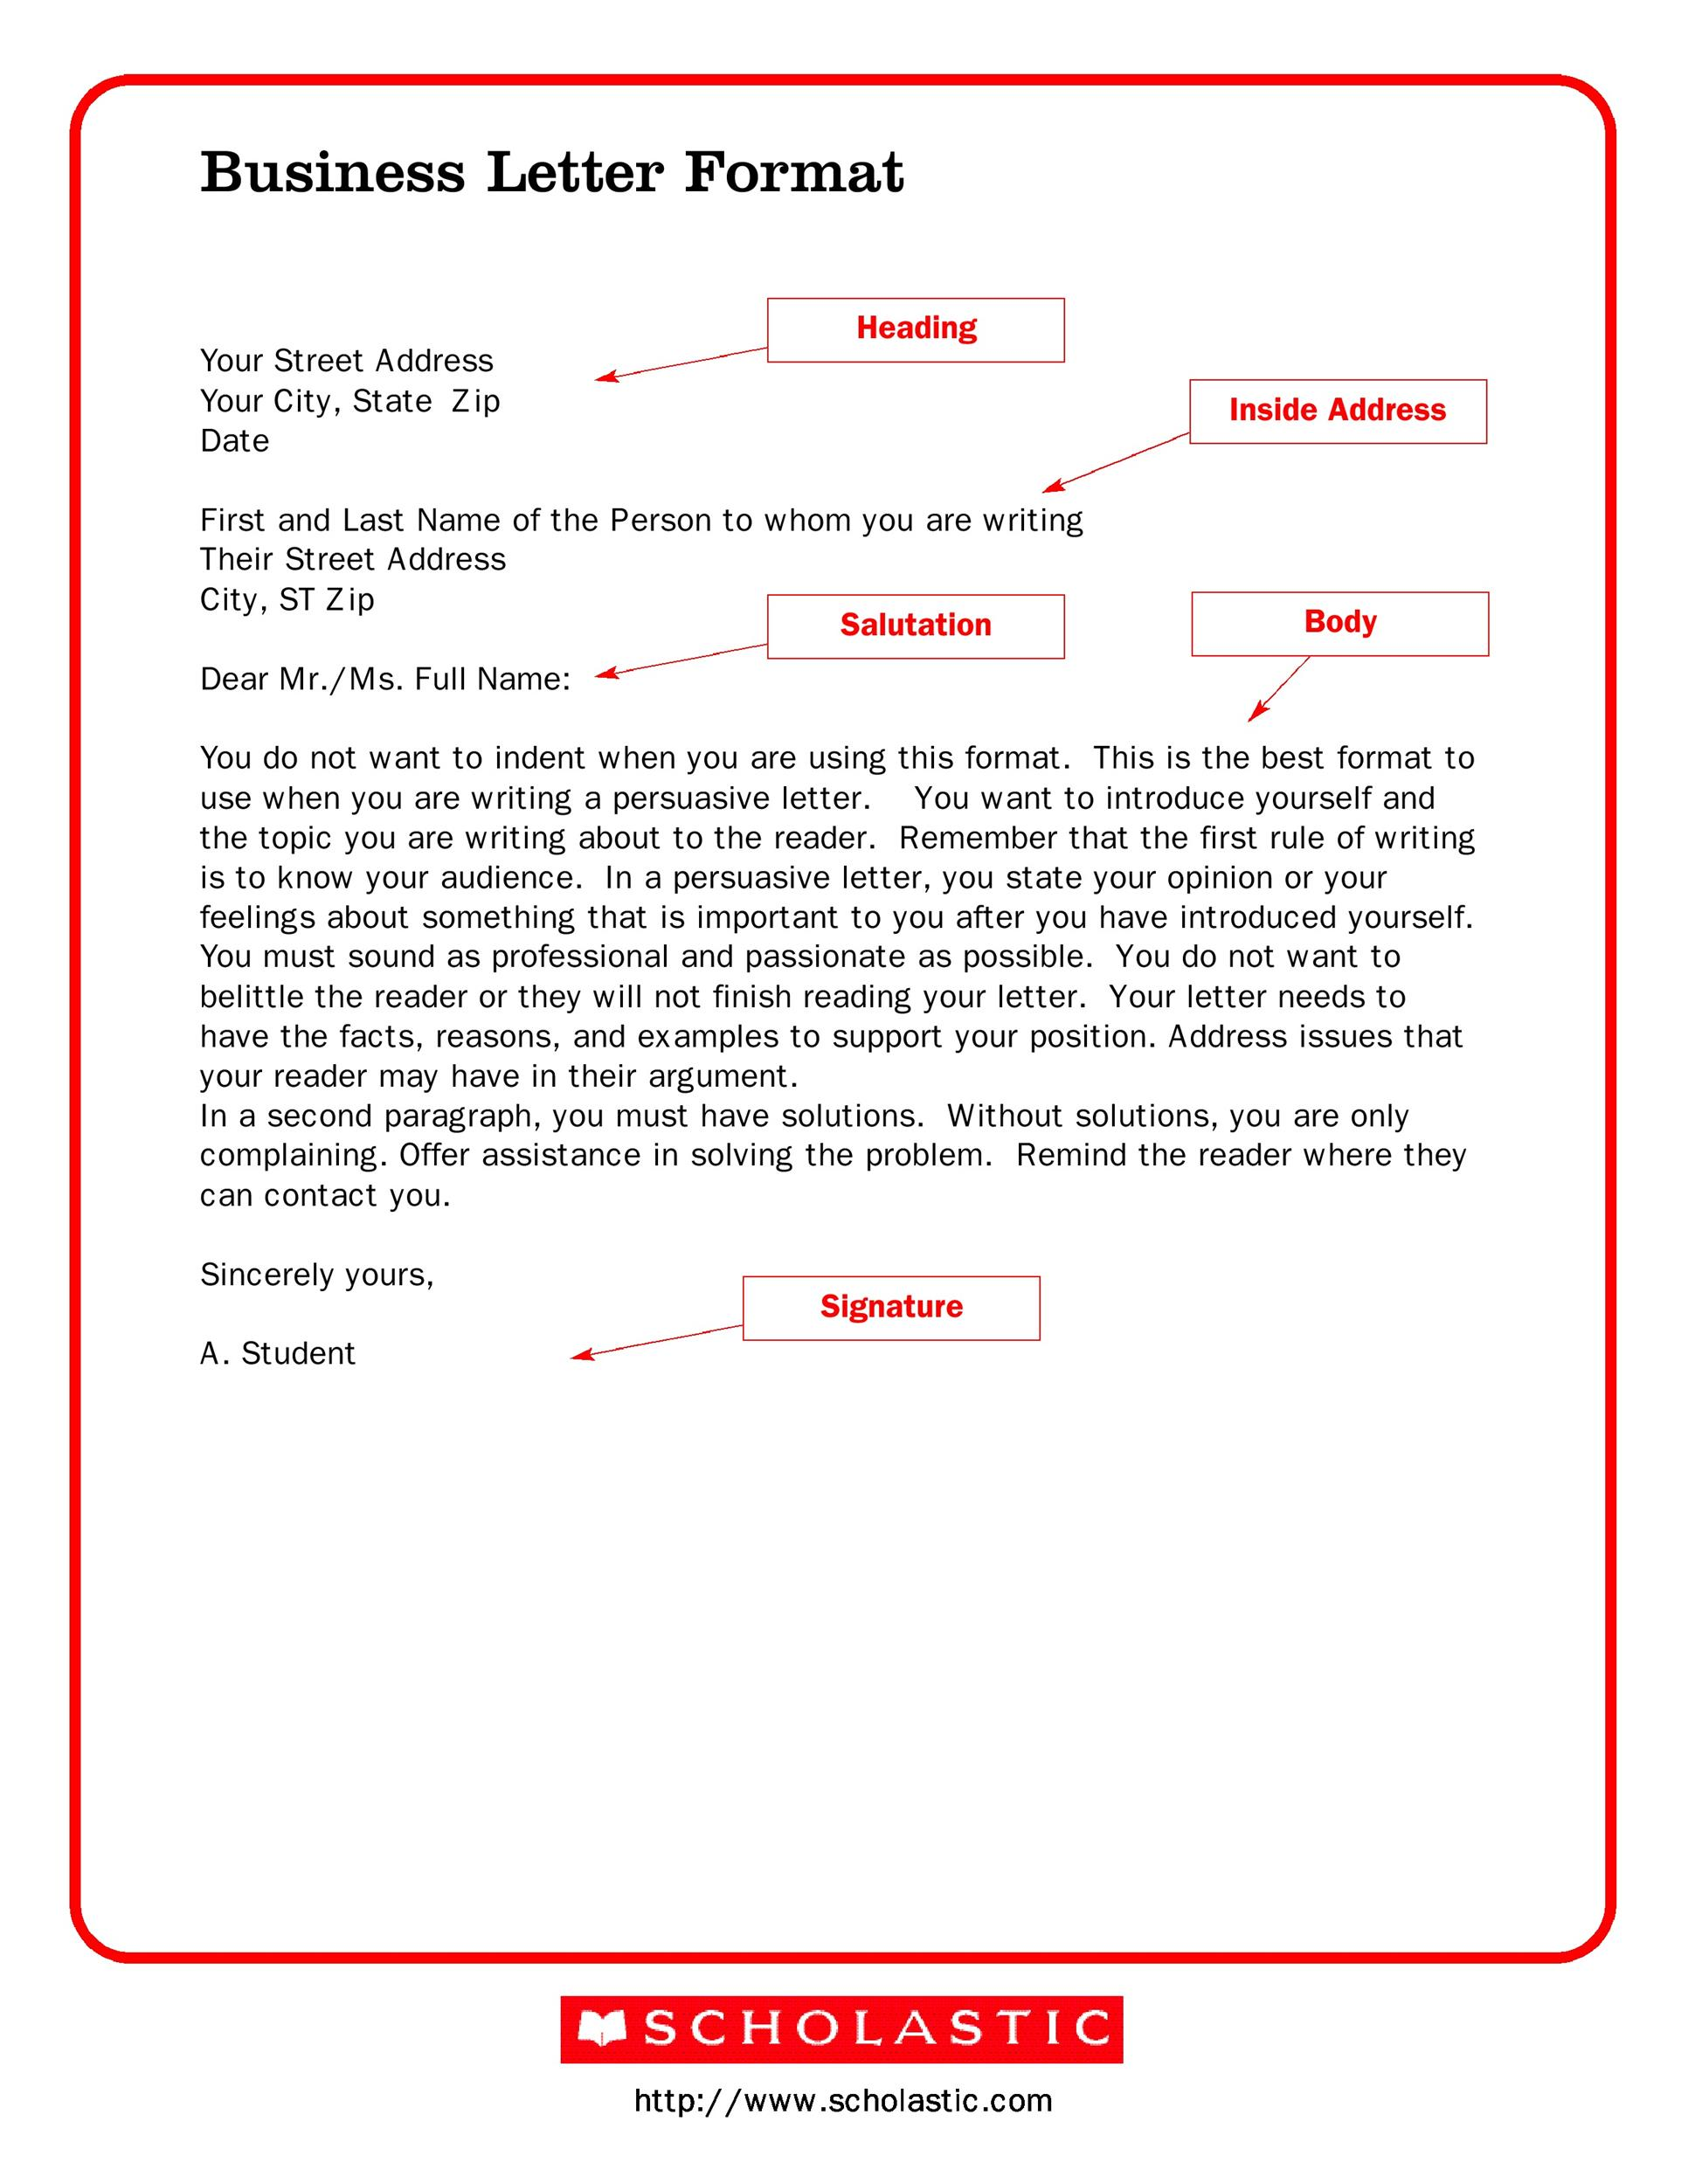 Business format letter template spiritdancerdesigns